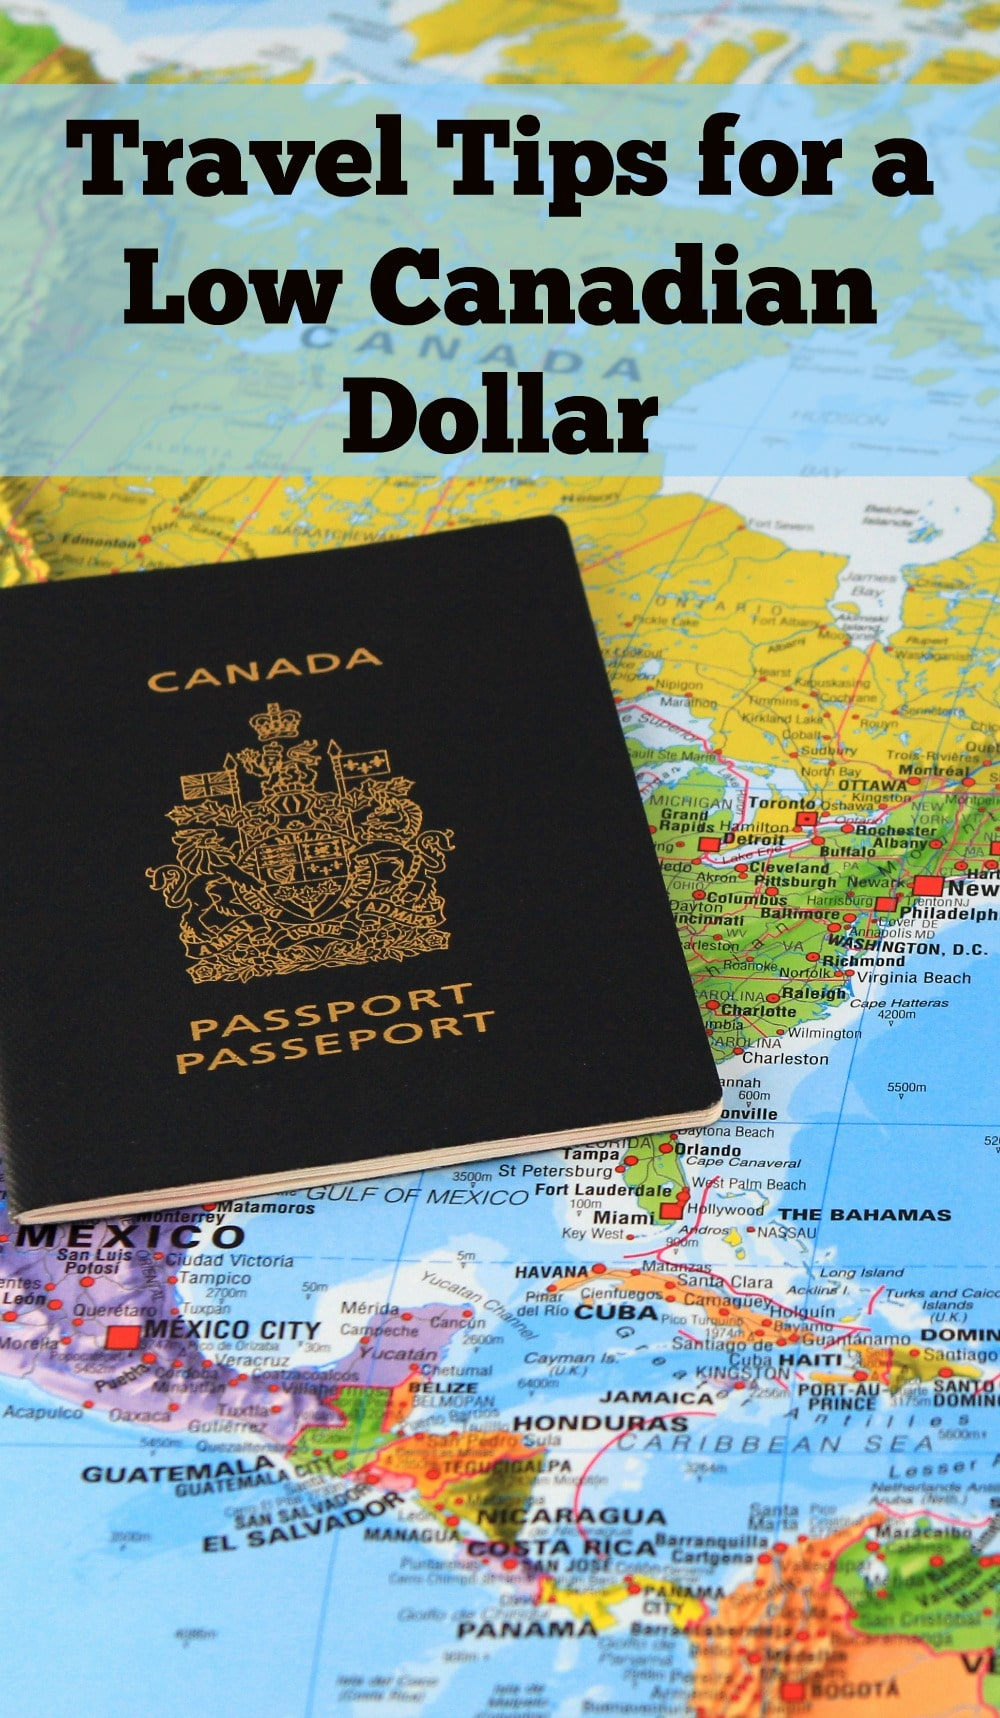 Travel Tips for a Low Canadian Dollar